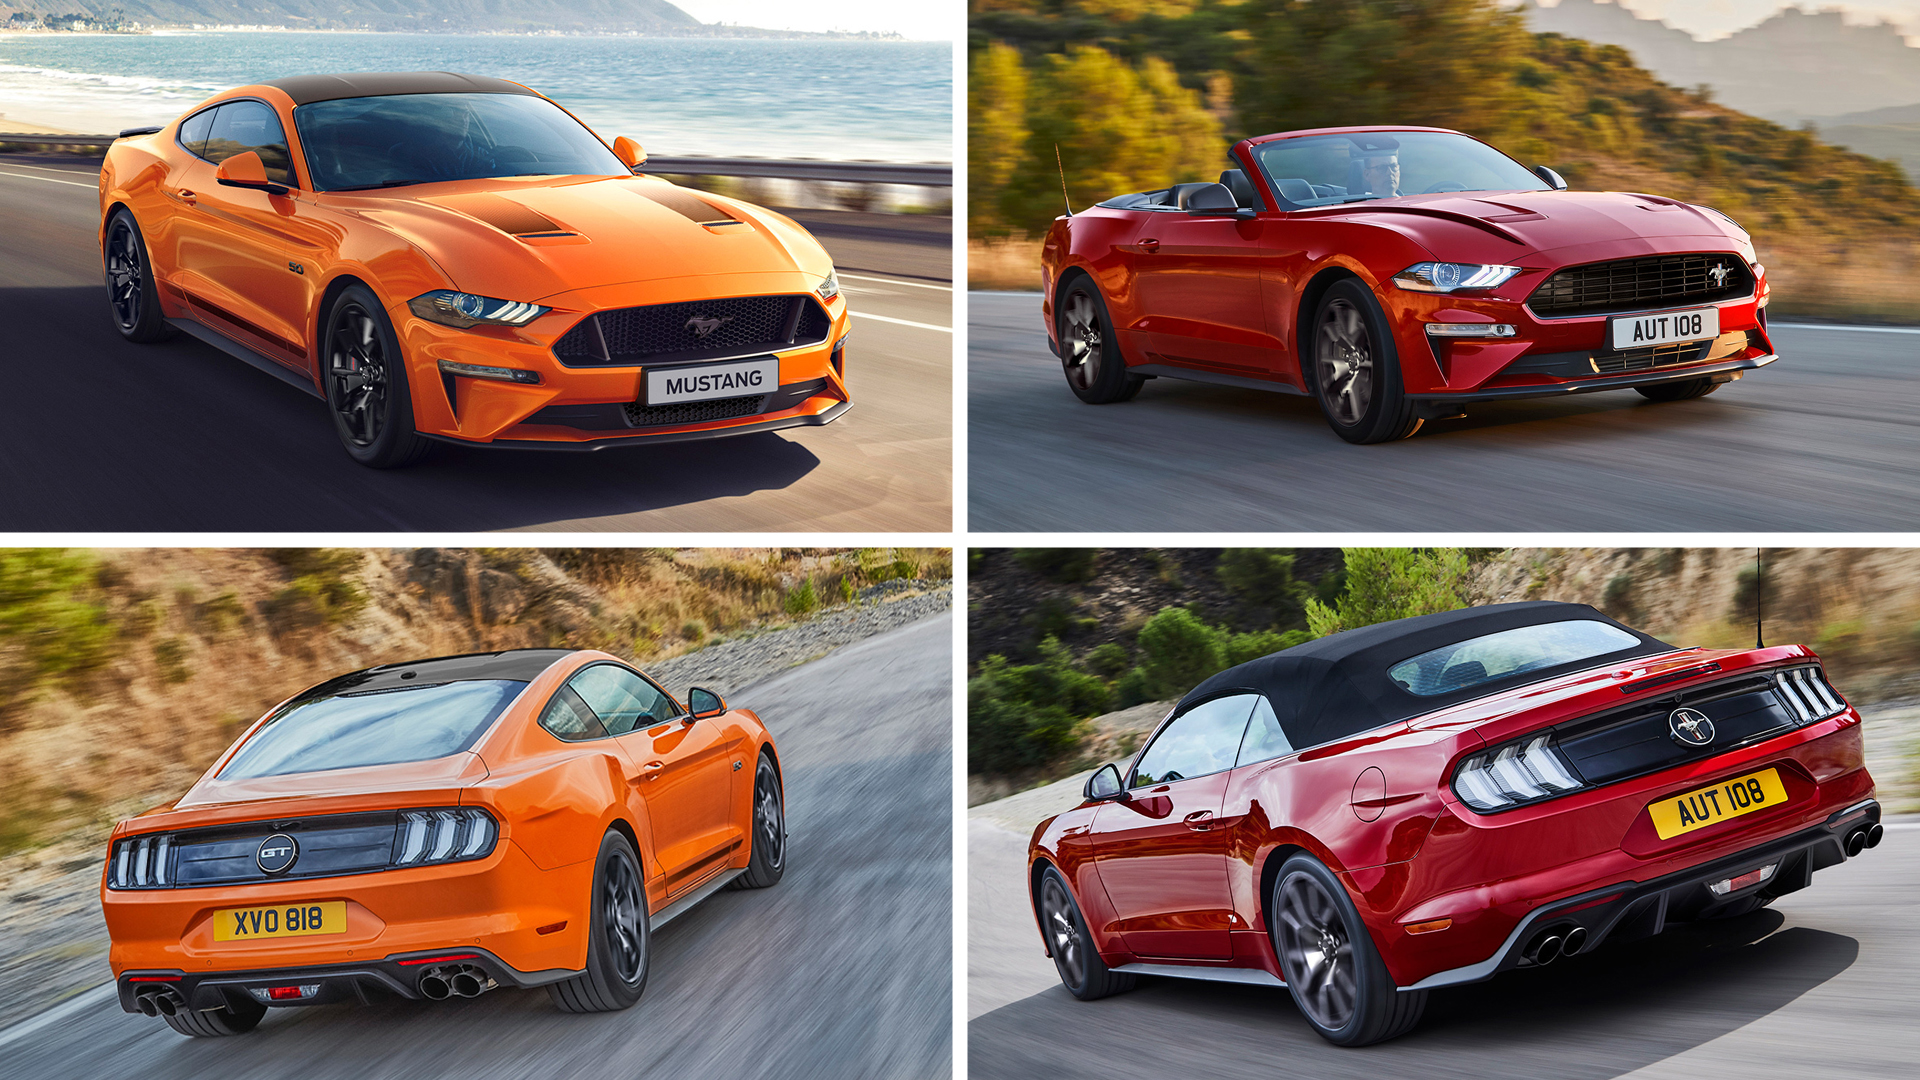 Ford Mustang55 anniversary Edition